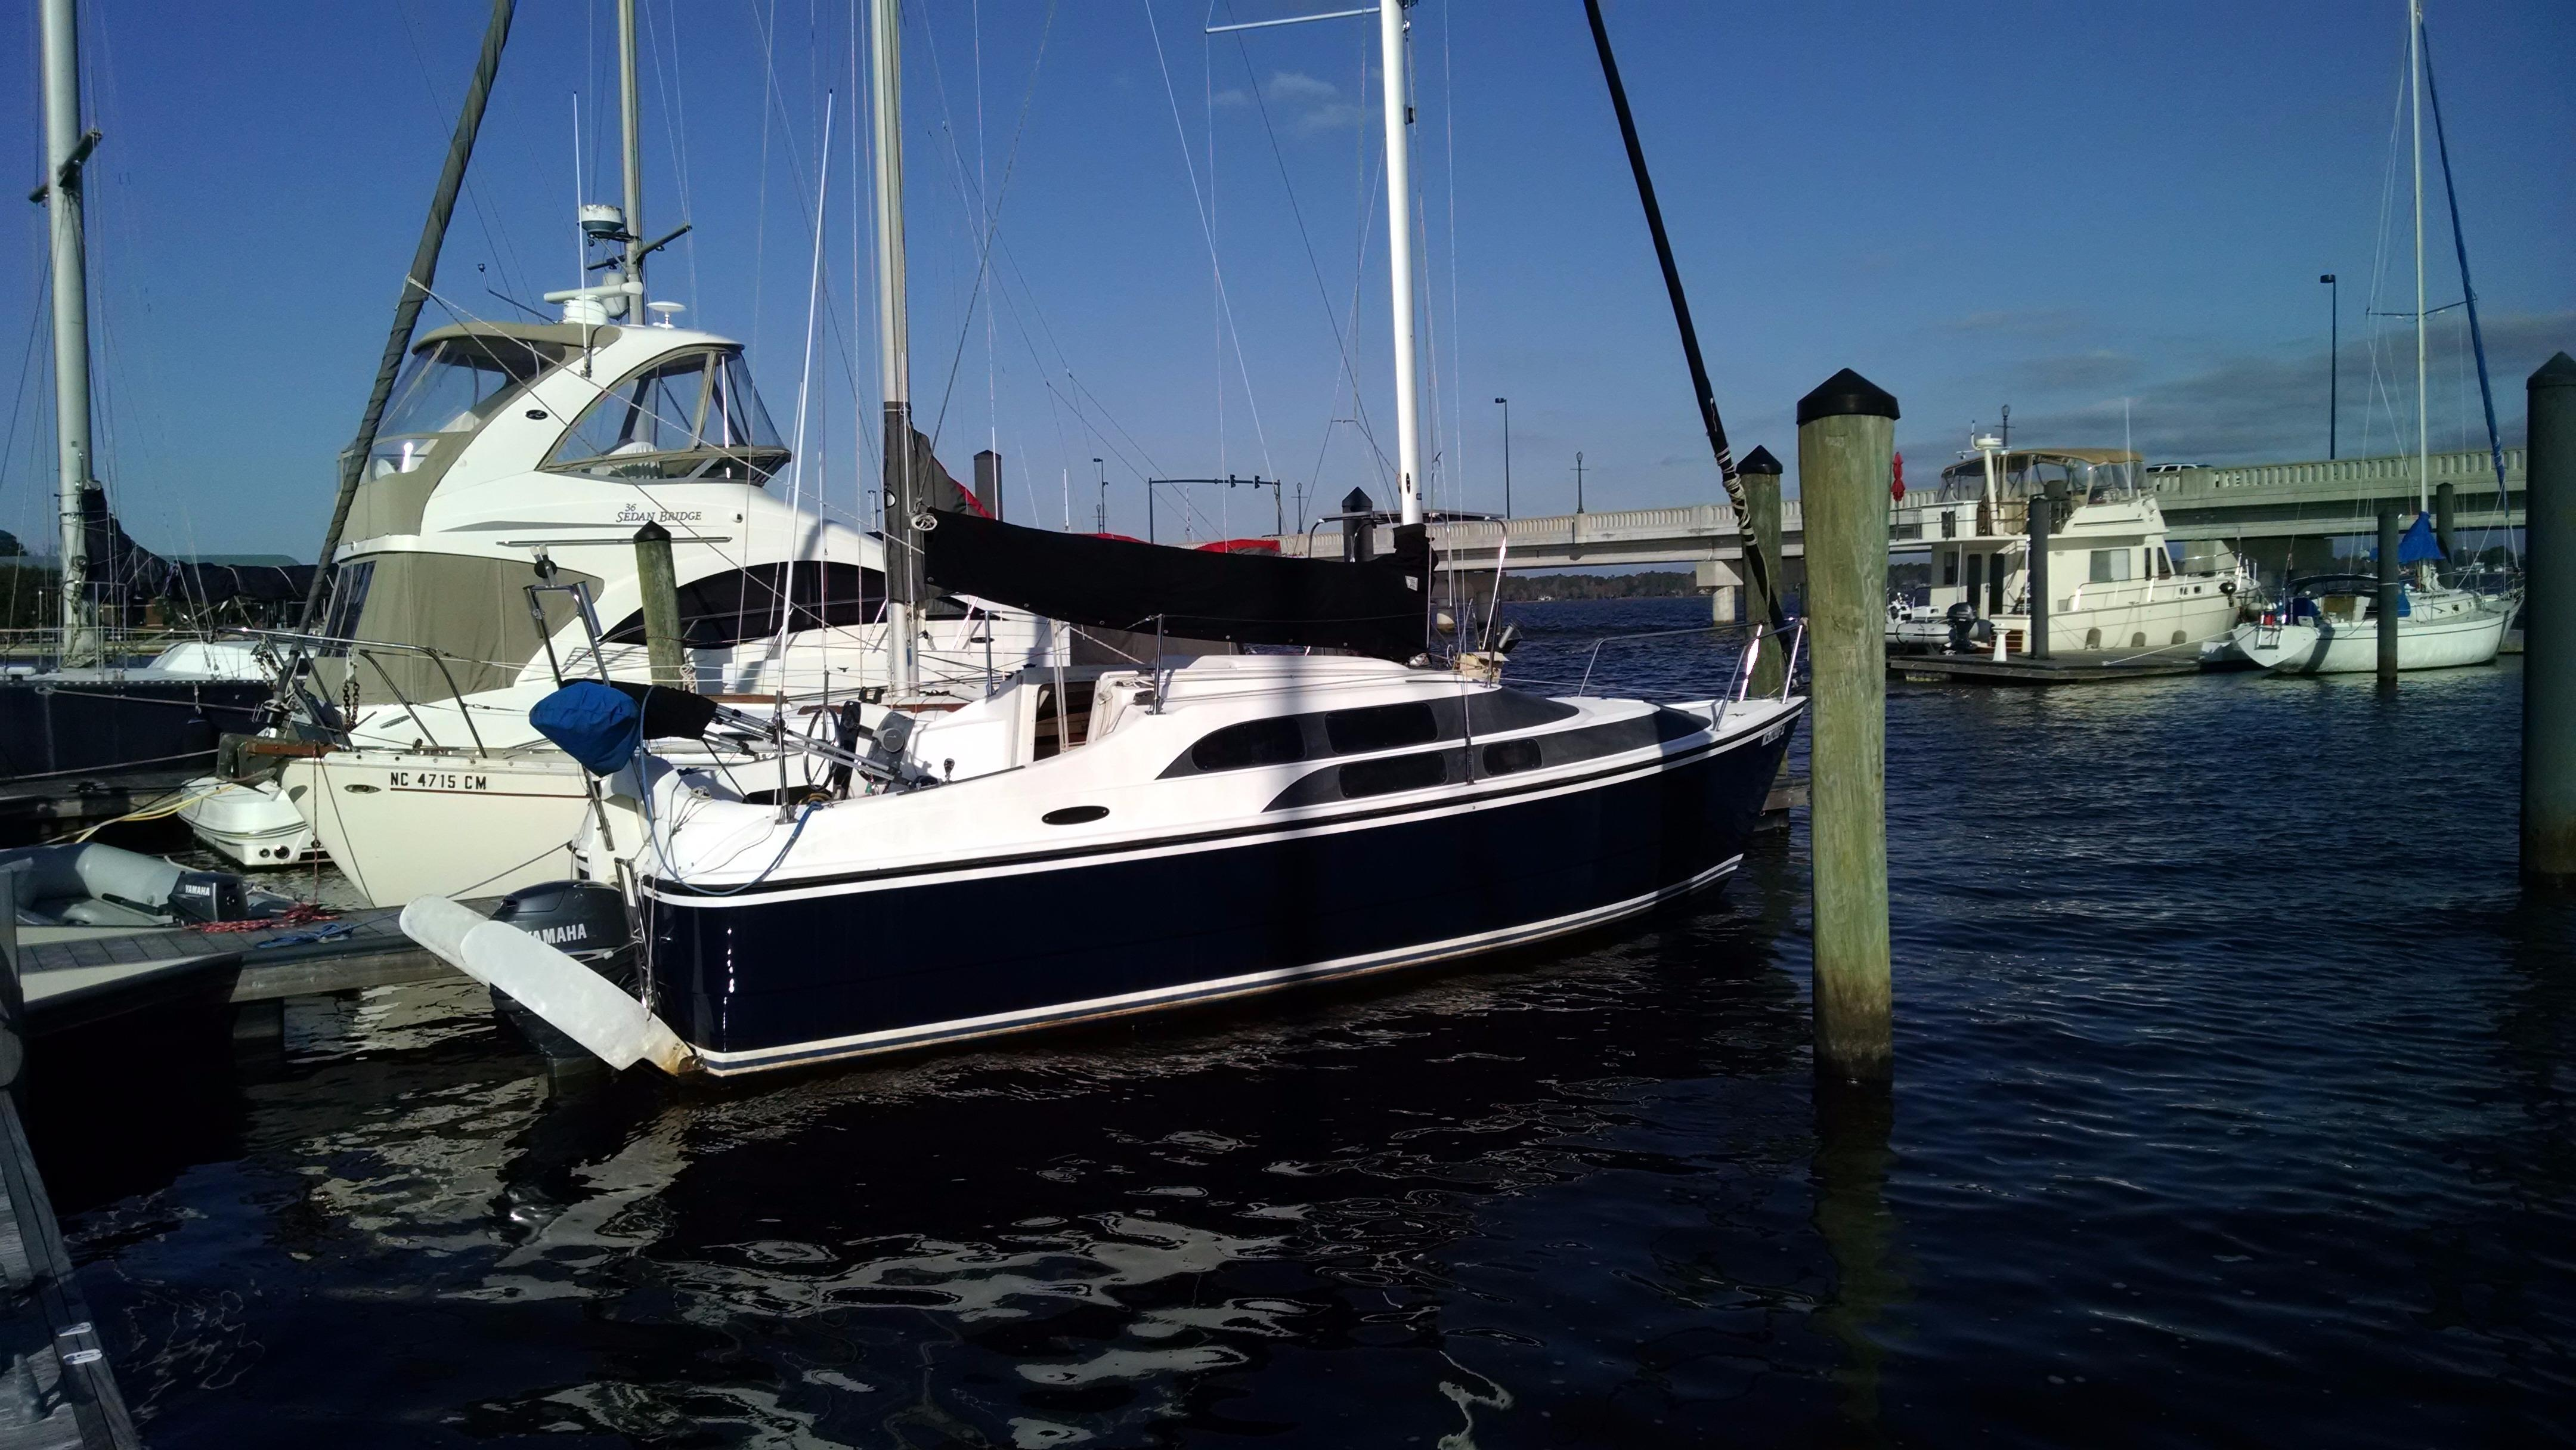 New Bern (NC) United States  City new picture : 2006 Macgregor 26M Sail Boat For Sale www.yachtworld.com